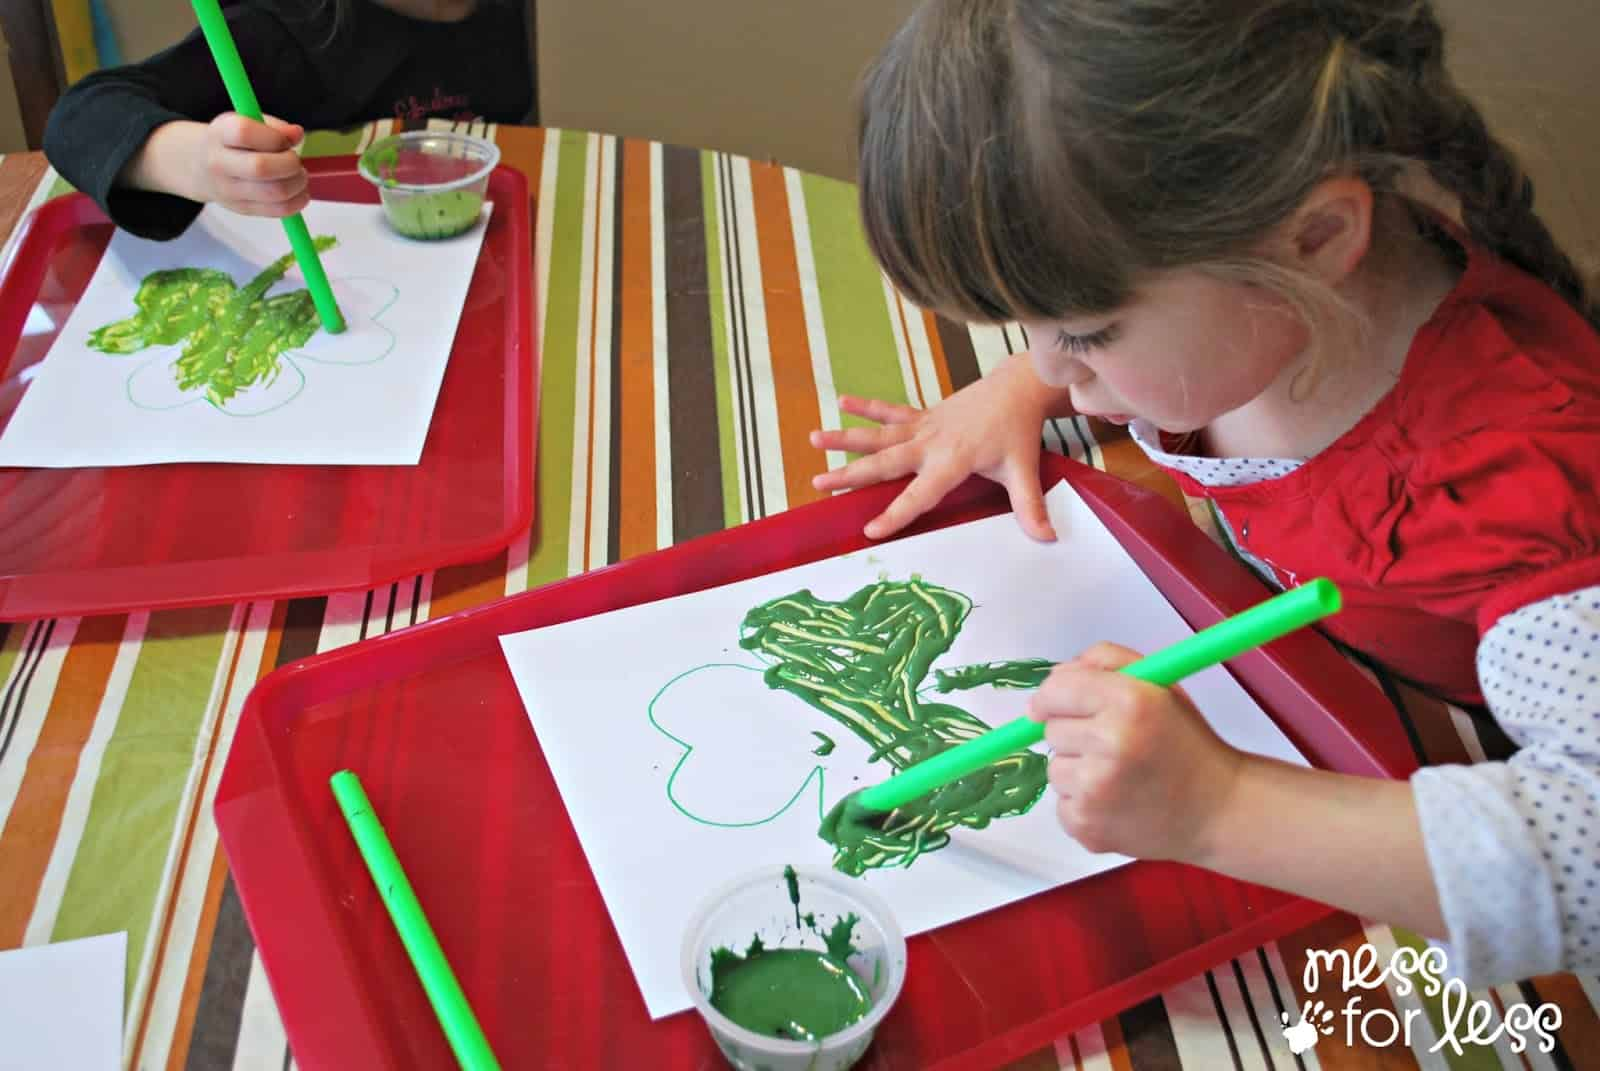 st patrick's day activity for kids